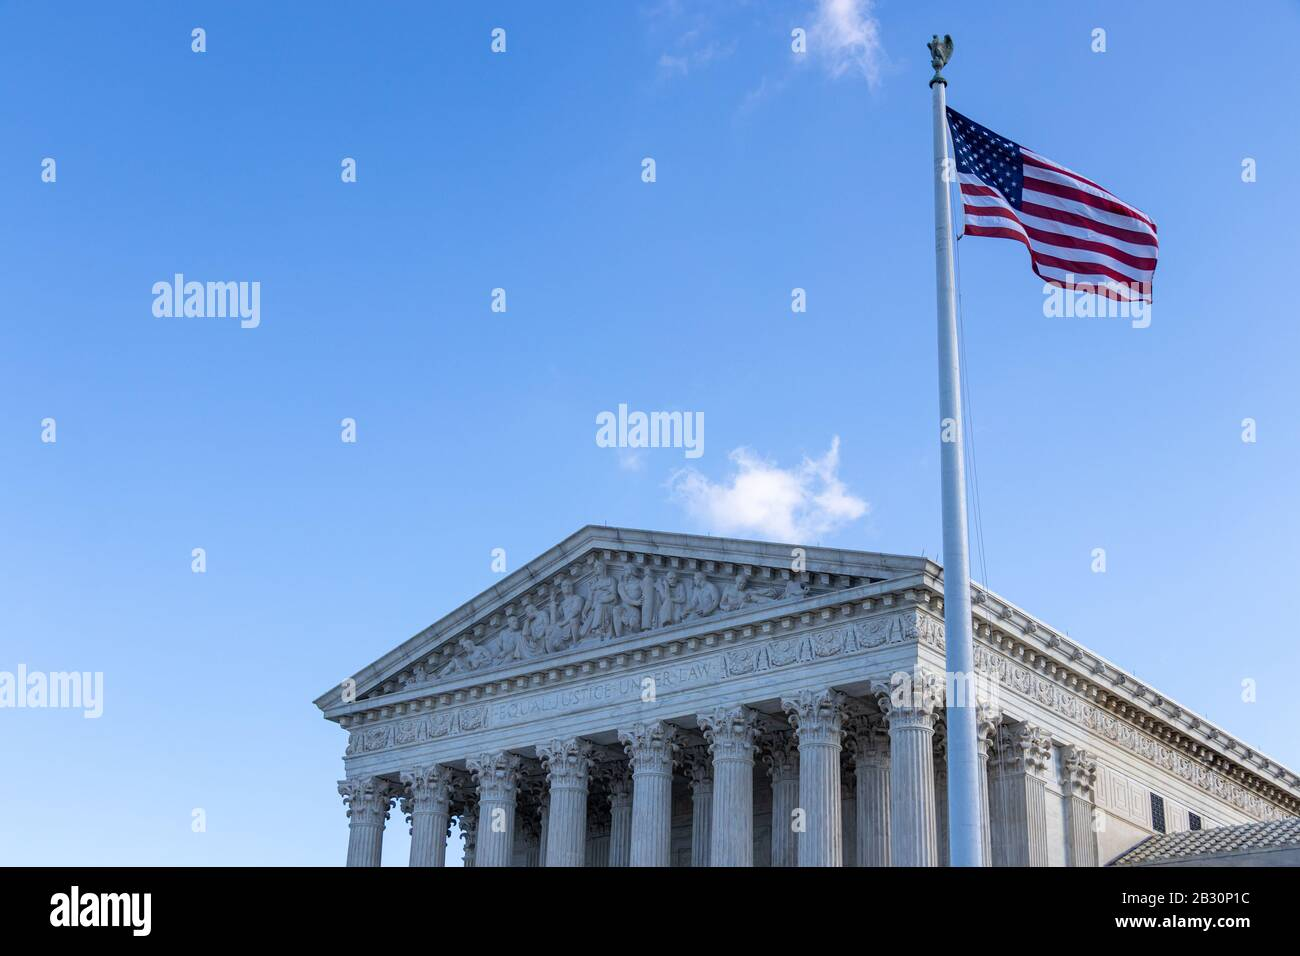 American flag waving out-front of the United States Supreme Court. Stock Photo